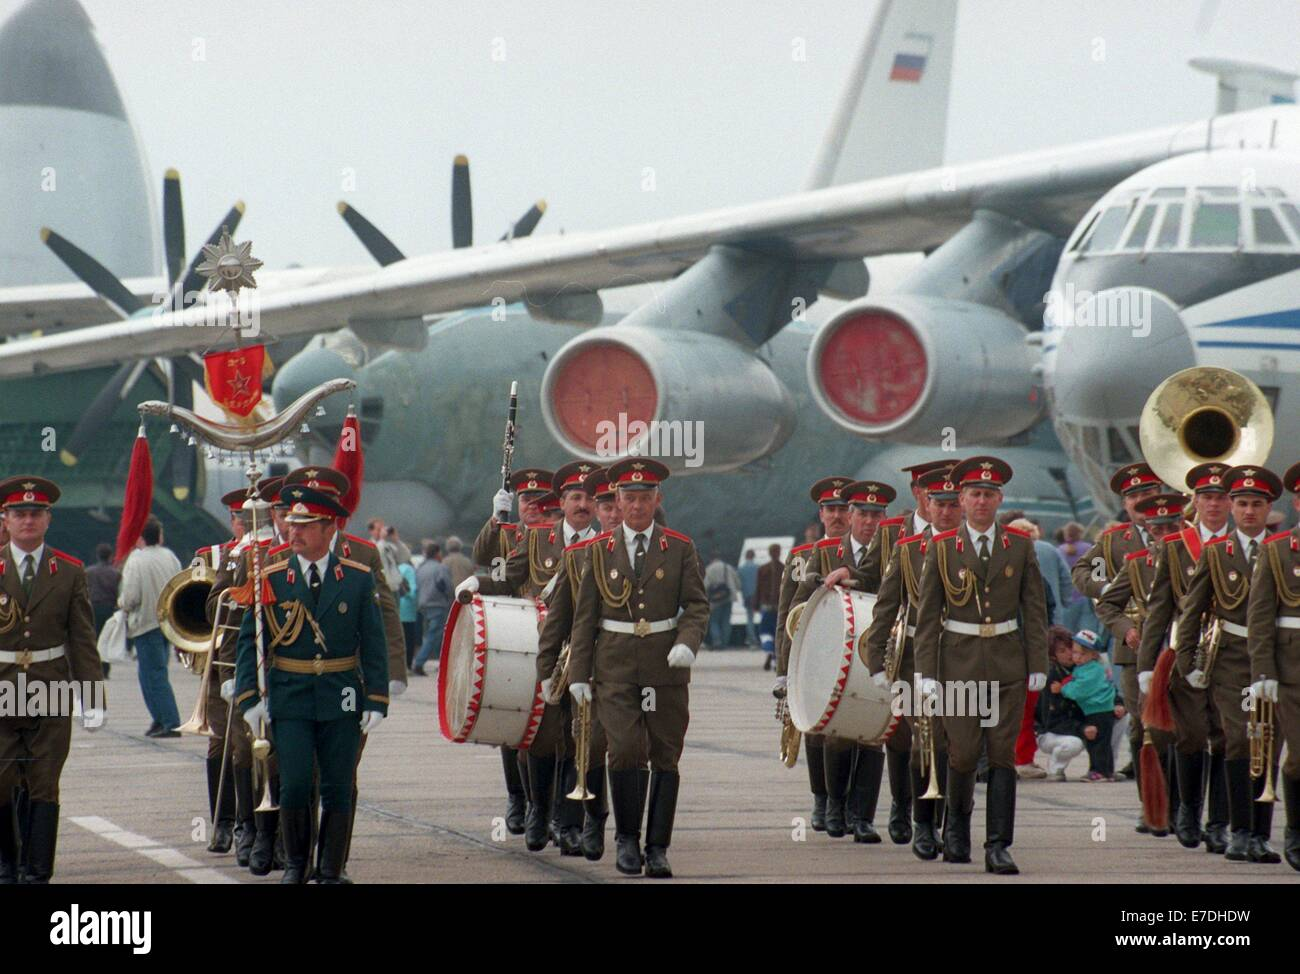 Units of the west group of Russian troops leave the Sperenberg military airport with a military ceremony near Zossen, - Stock Image